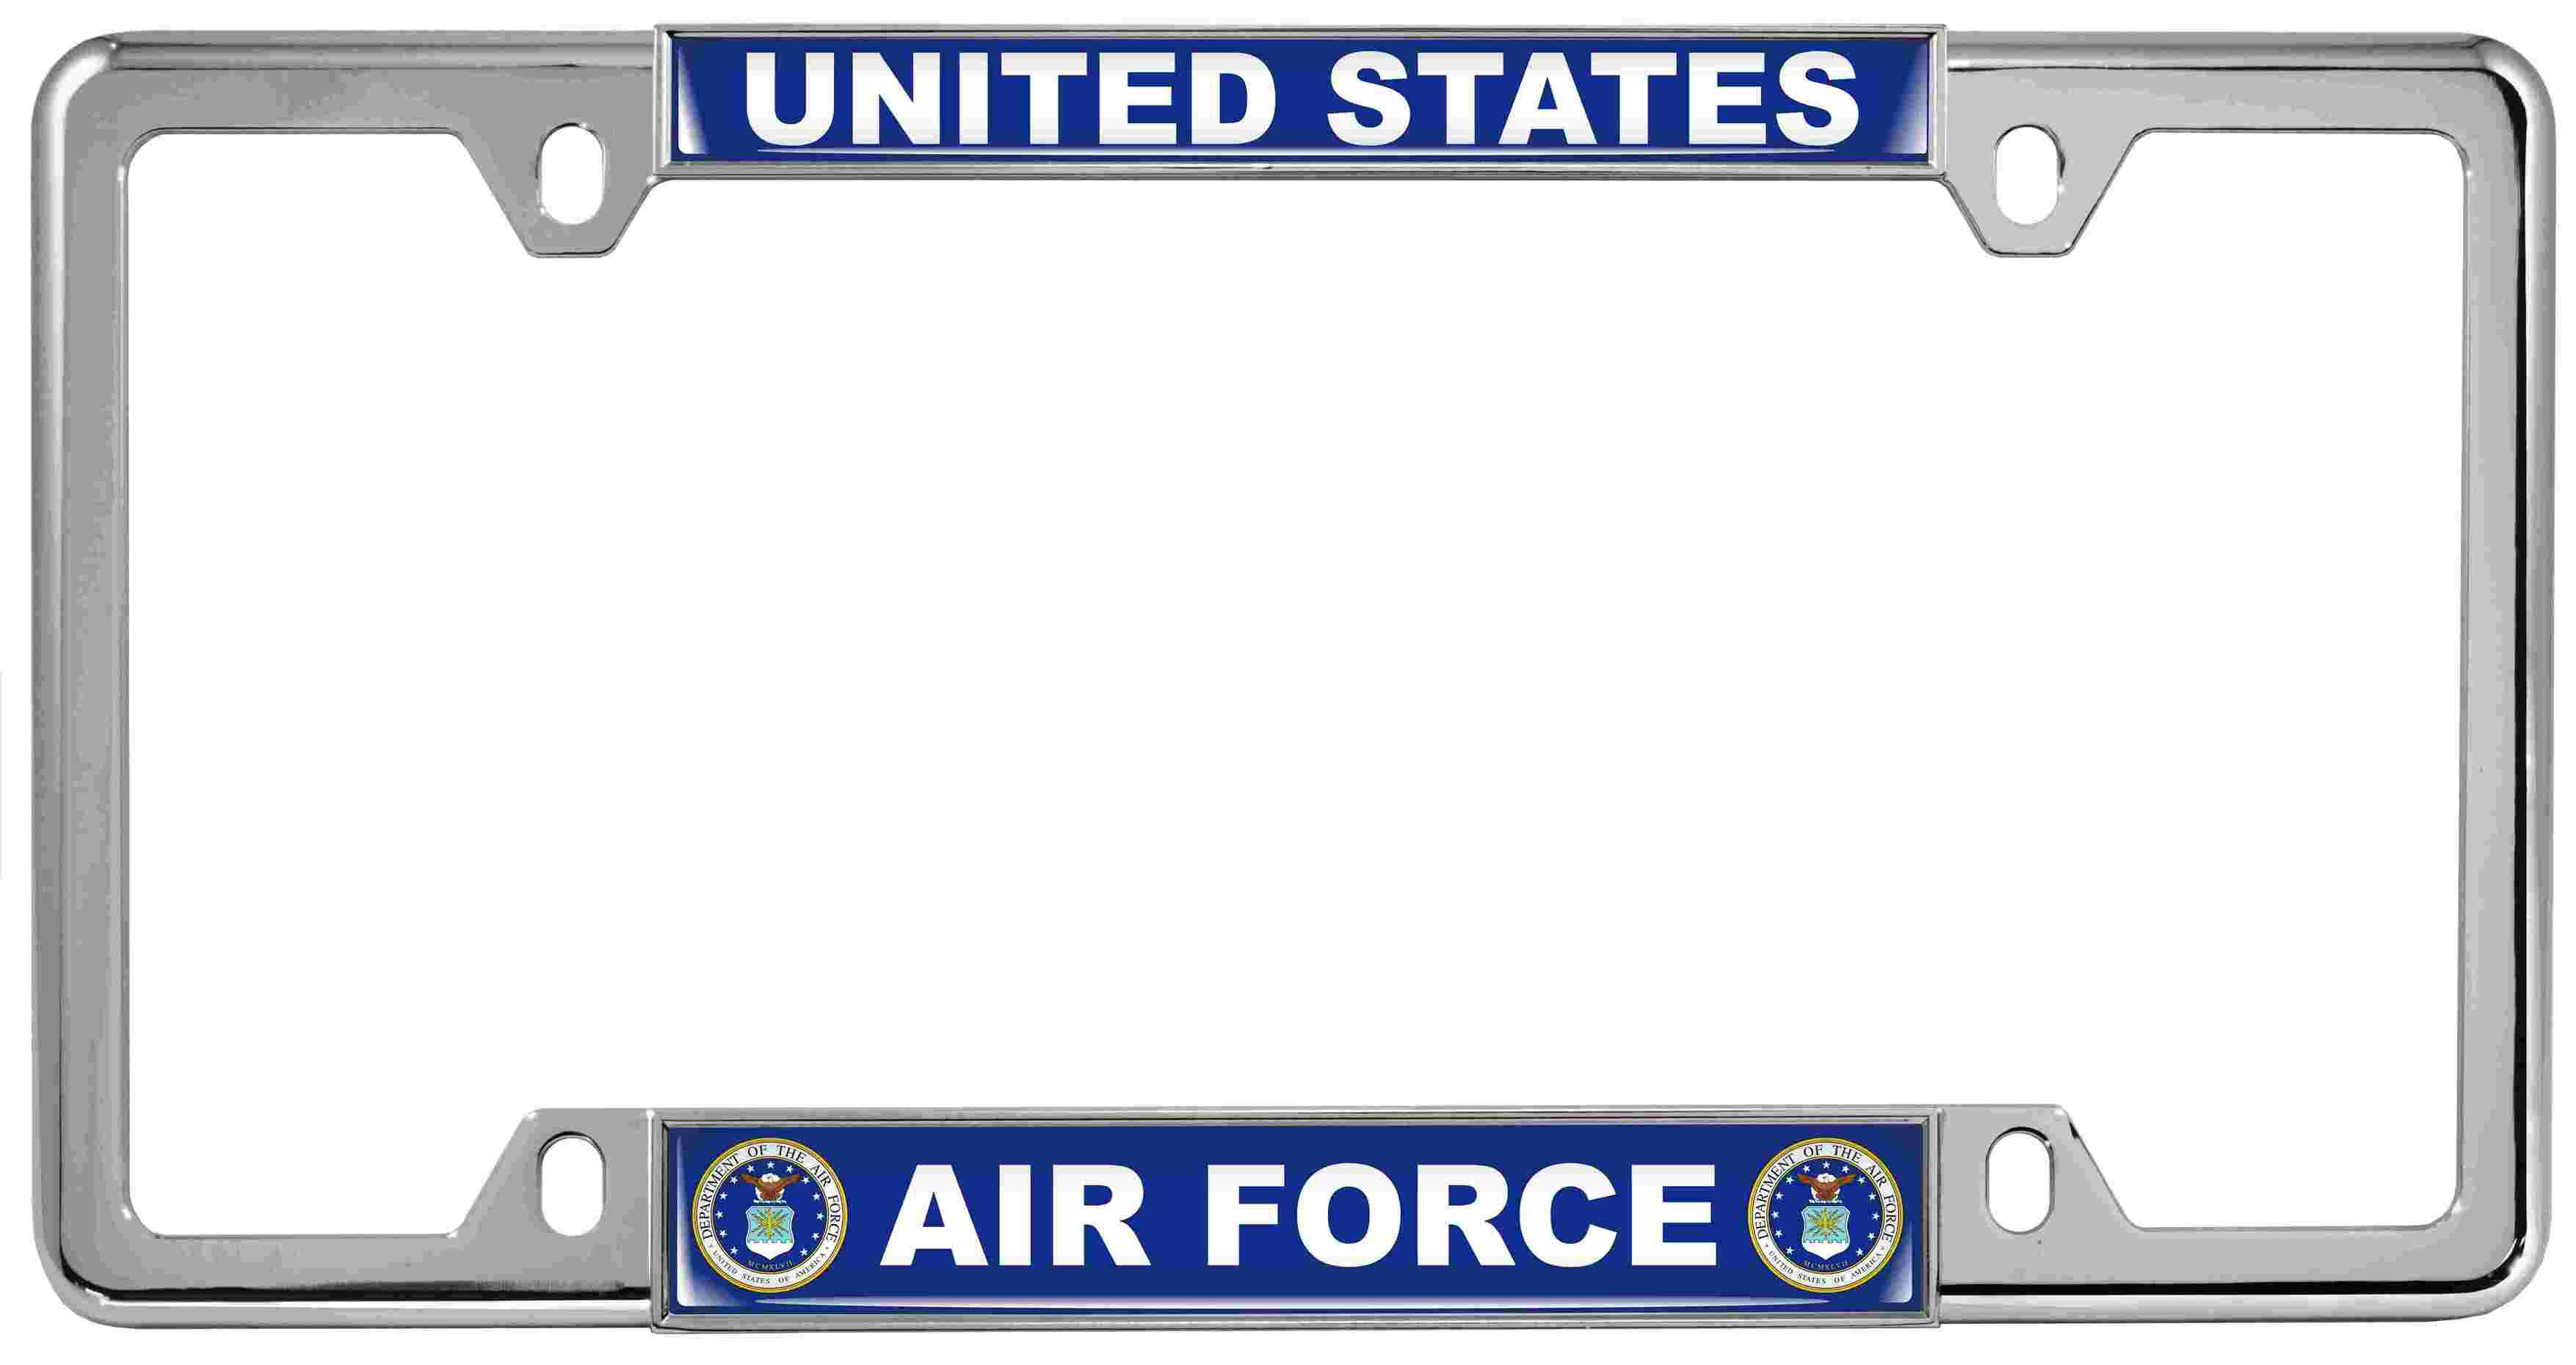 Department of U.S. Air Force Design Patriotic License Plate Frames